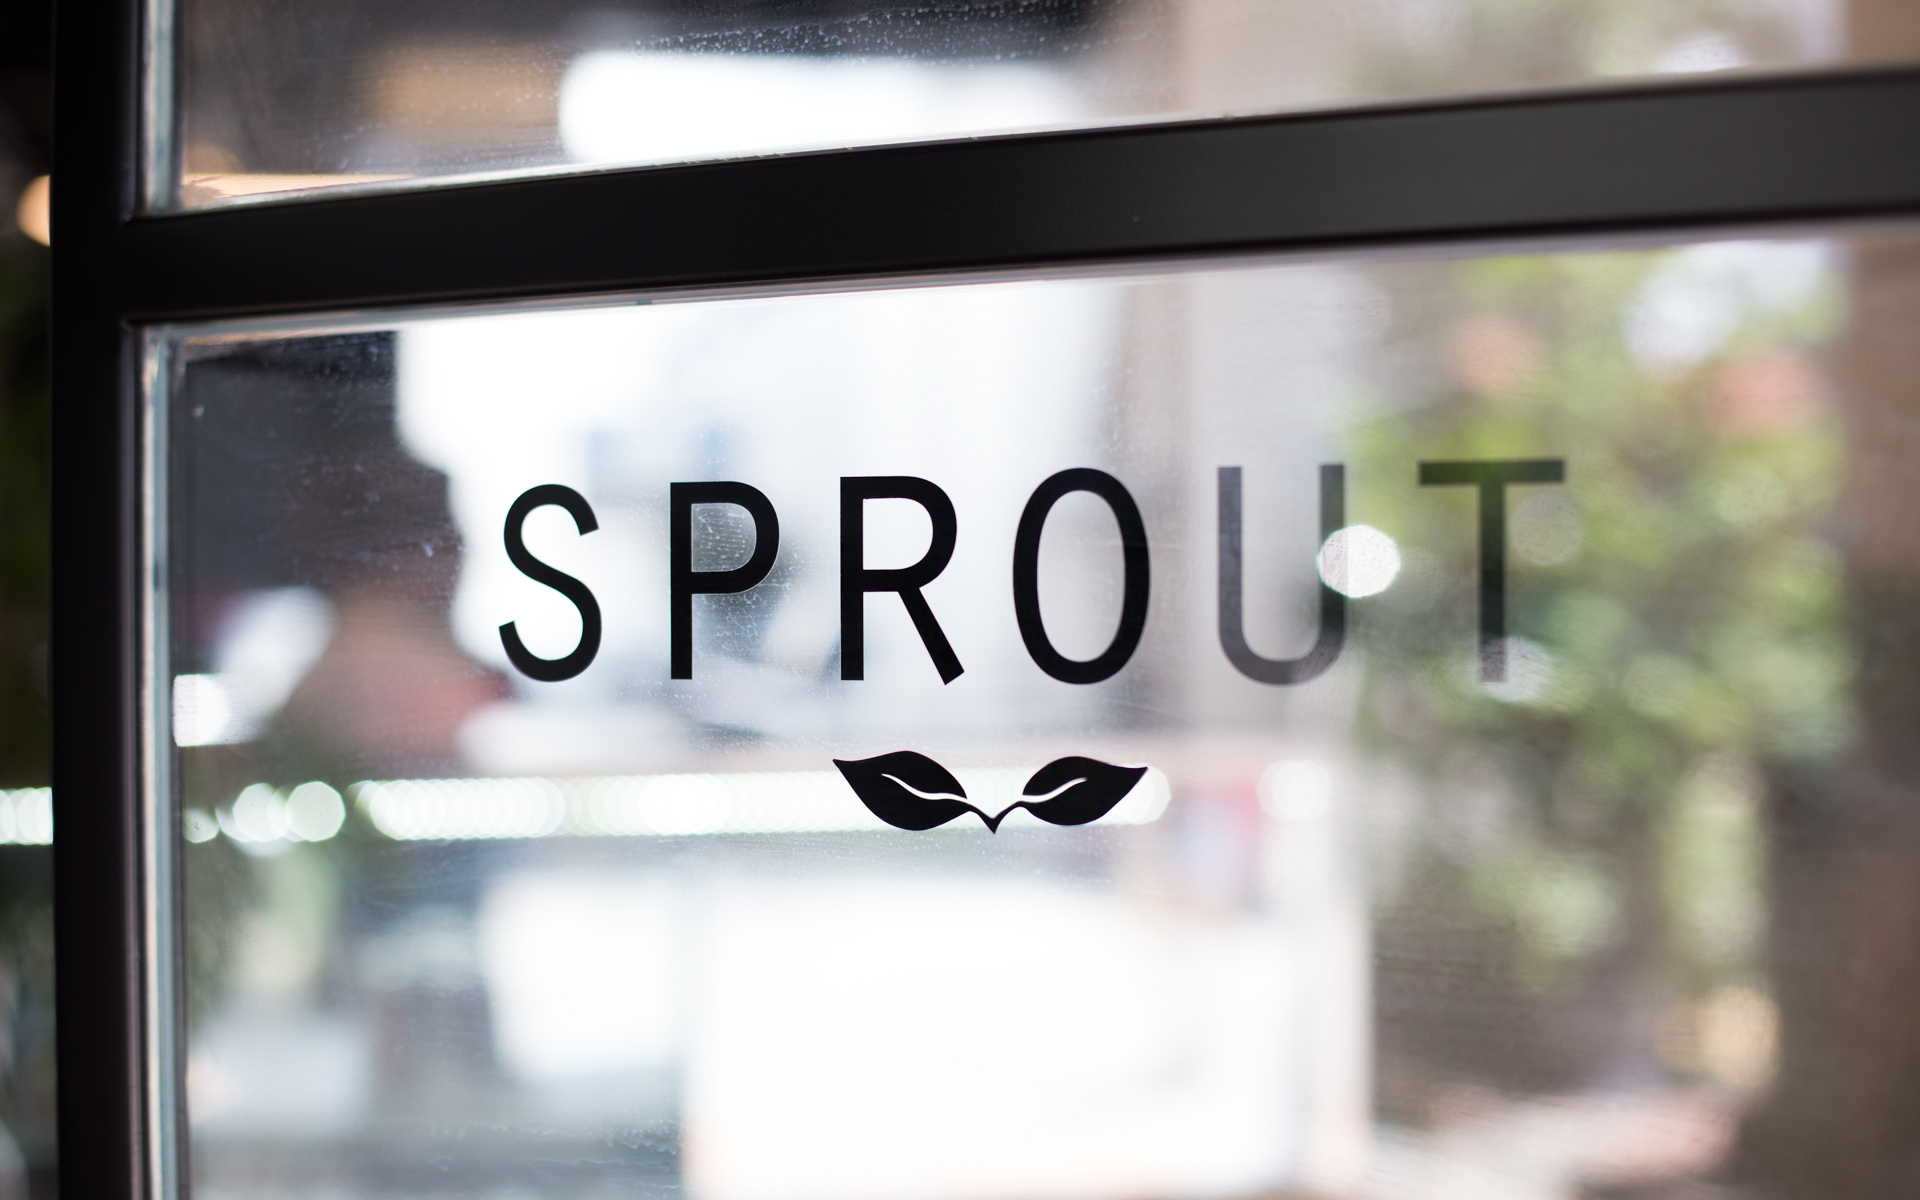 SPROUT1.jpg